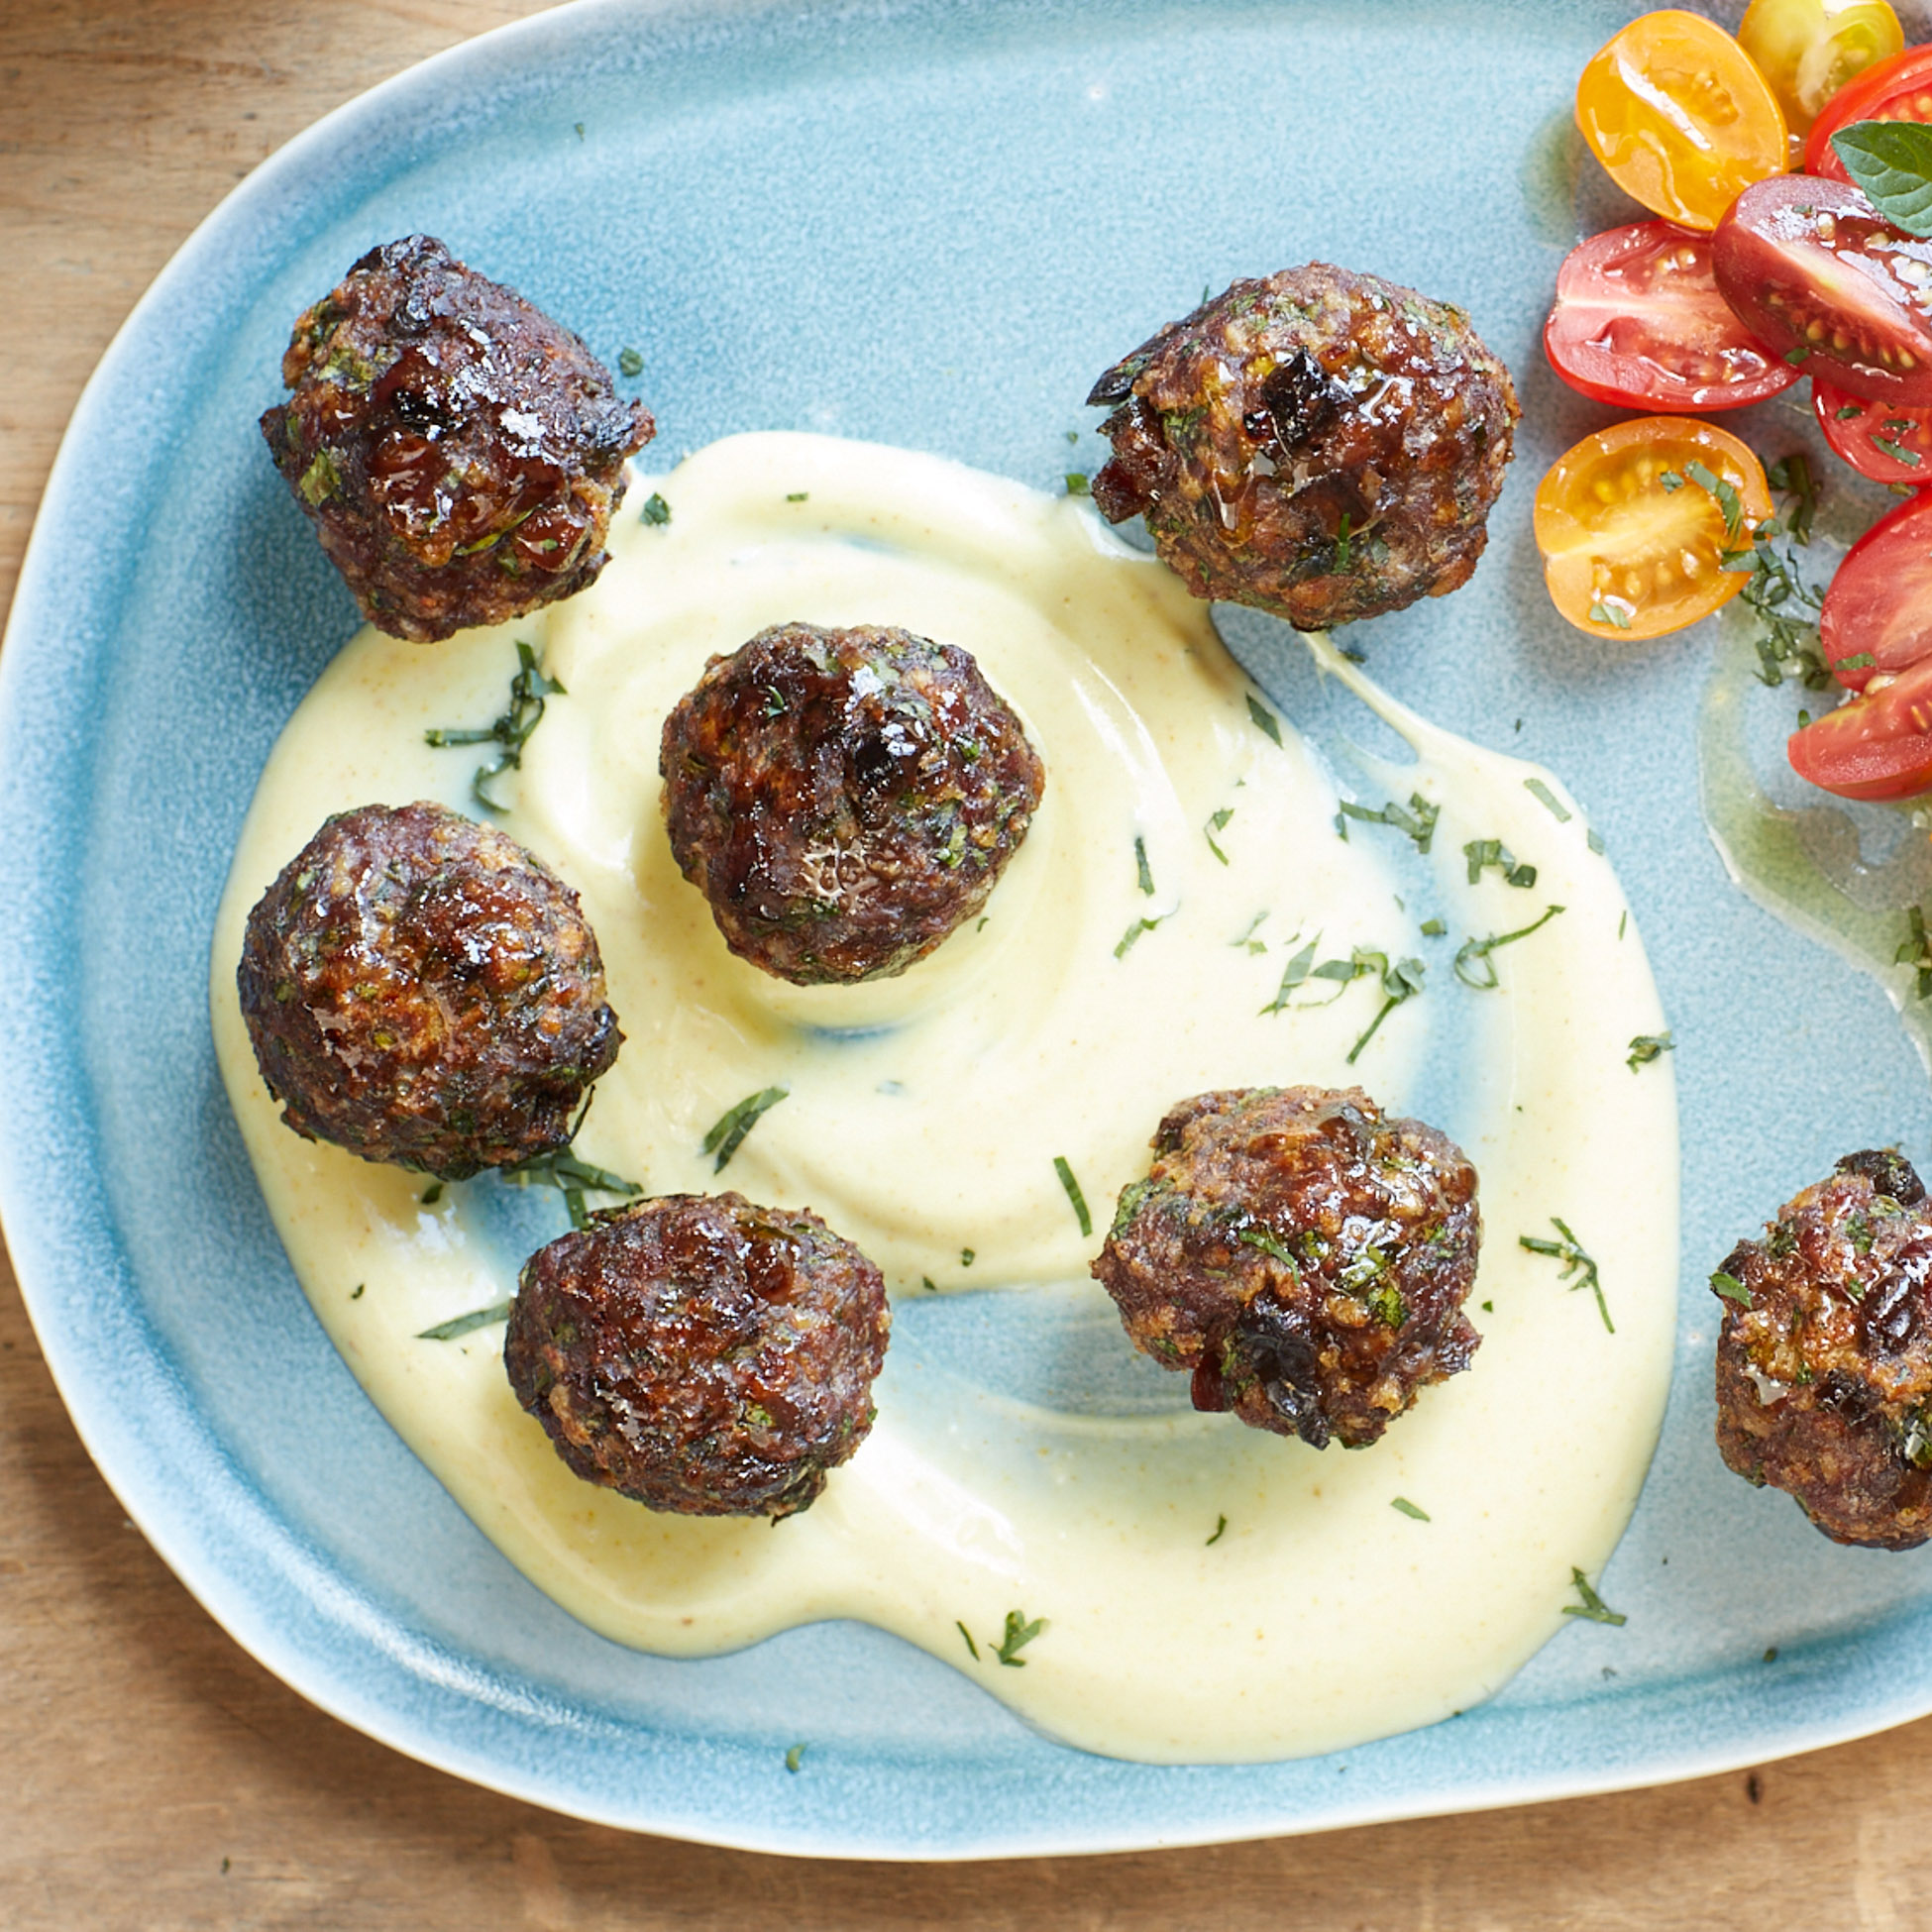 <p>The sweetness of prunes balances out the savory flavors of cumin and garlic in bite-sized lamb meatballs served with yogurt. Serve them in wraps.</p>